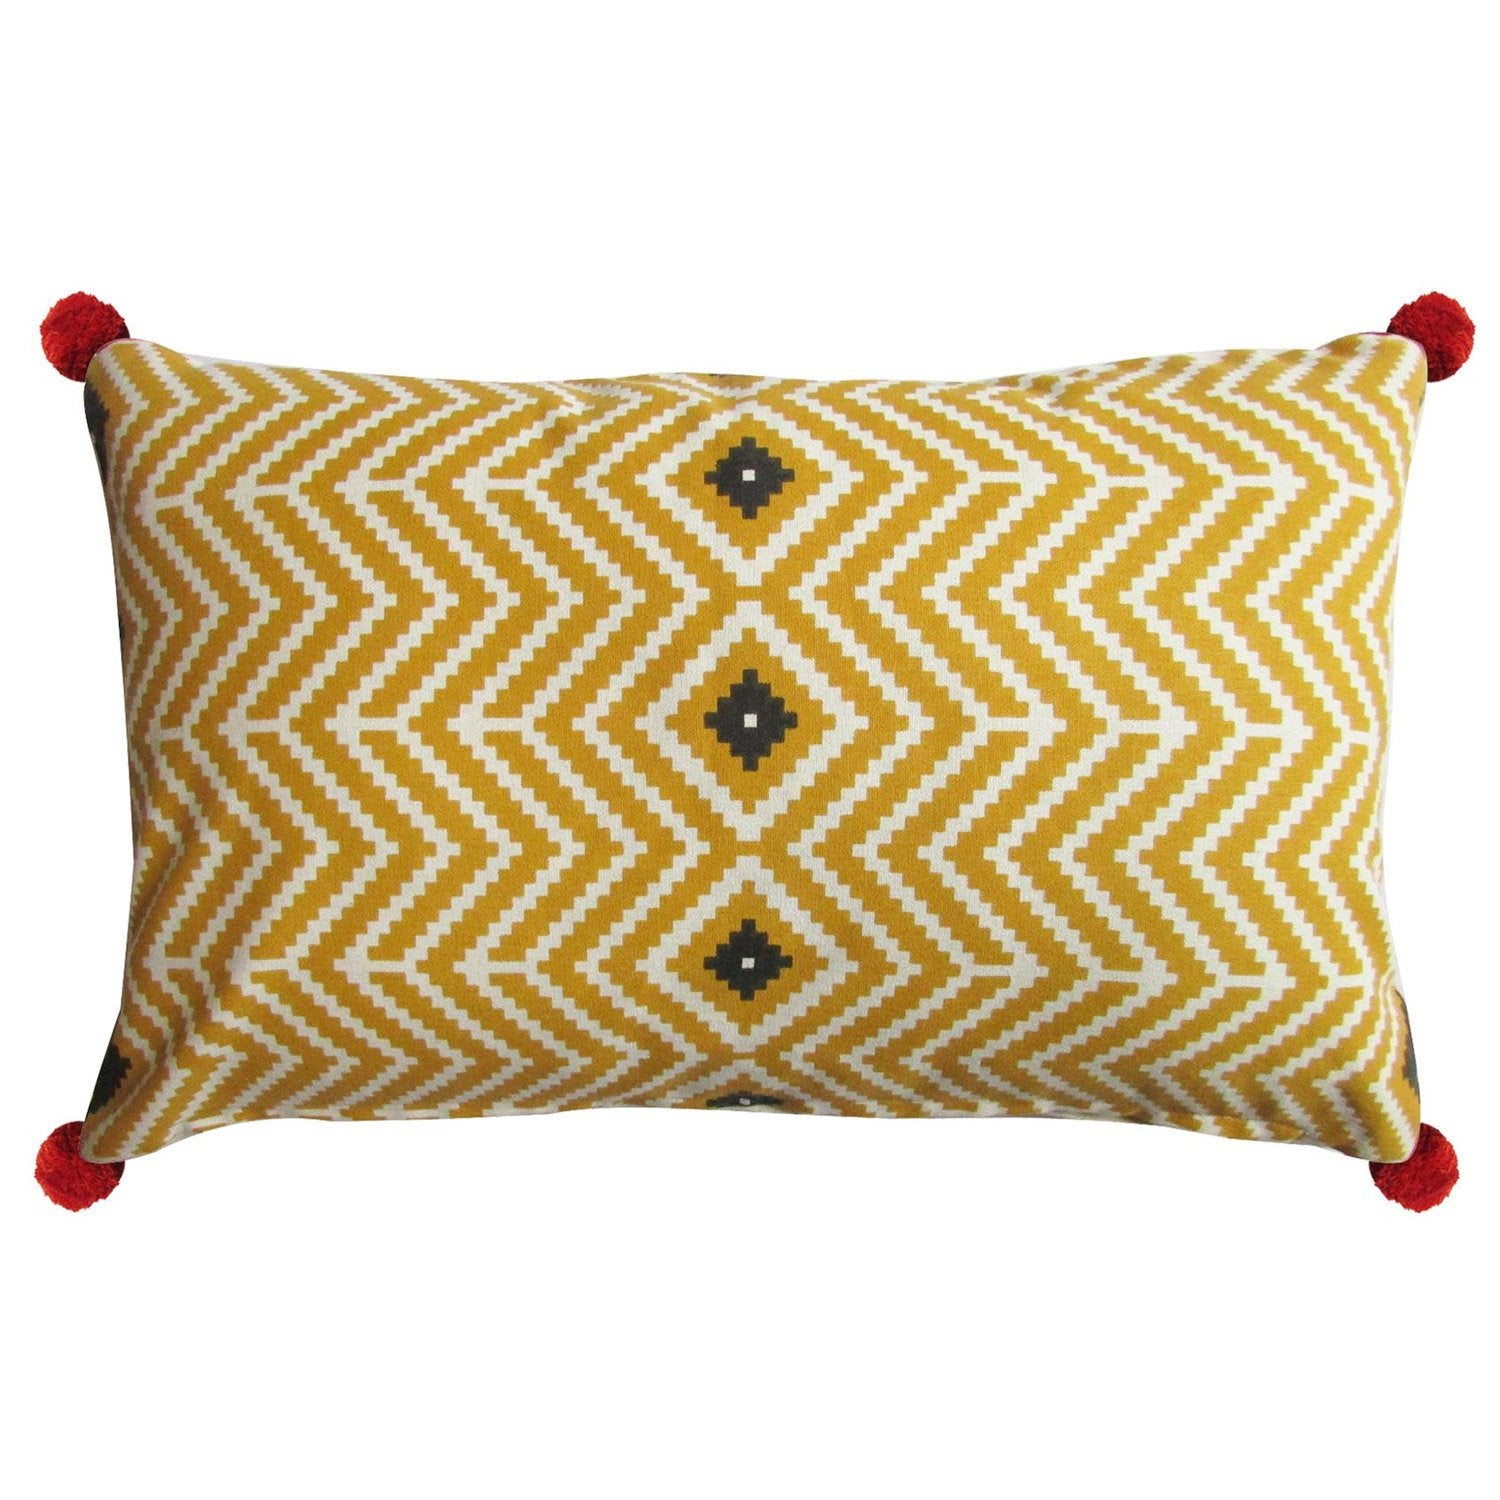 coussin mexico inspire, moutarde l.50.0 x h.30.0 cm | leroy merlin